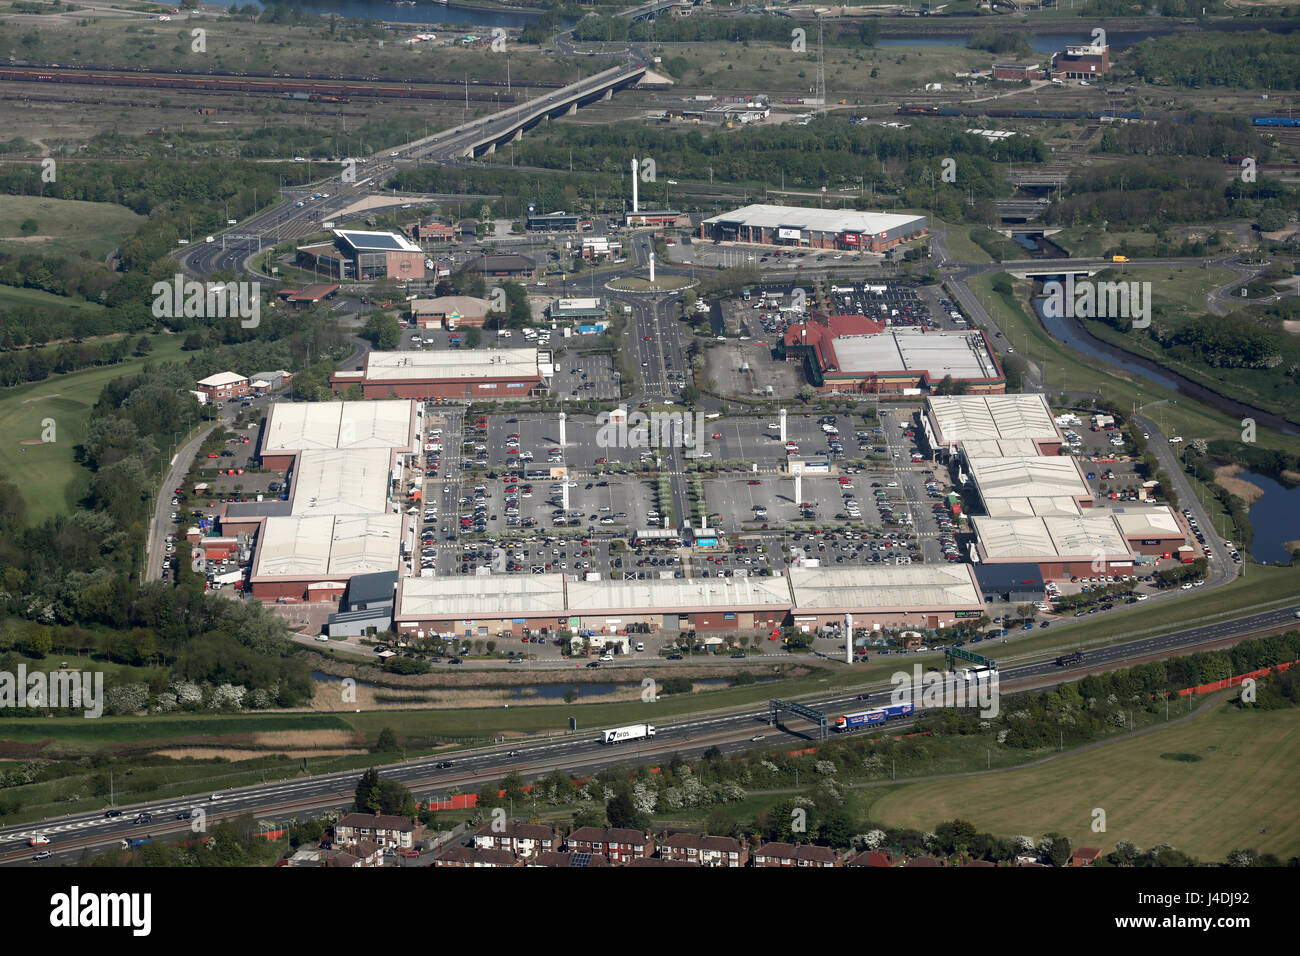 aerial view of Teesside Shopping Park, Stockton on Tees, UK Stock Photo